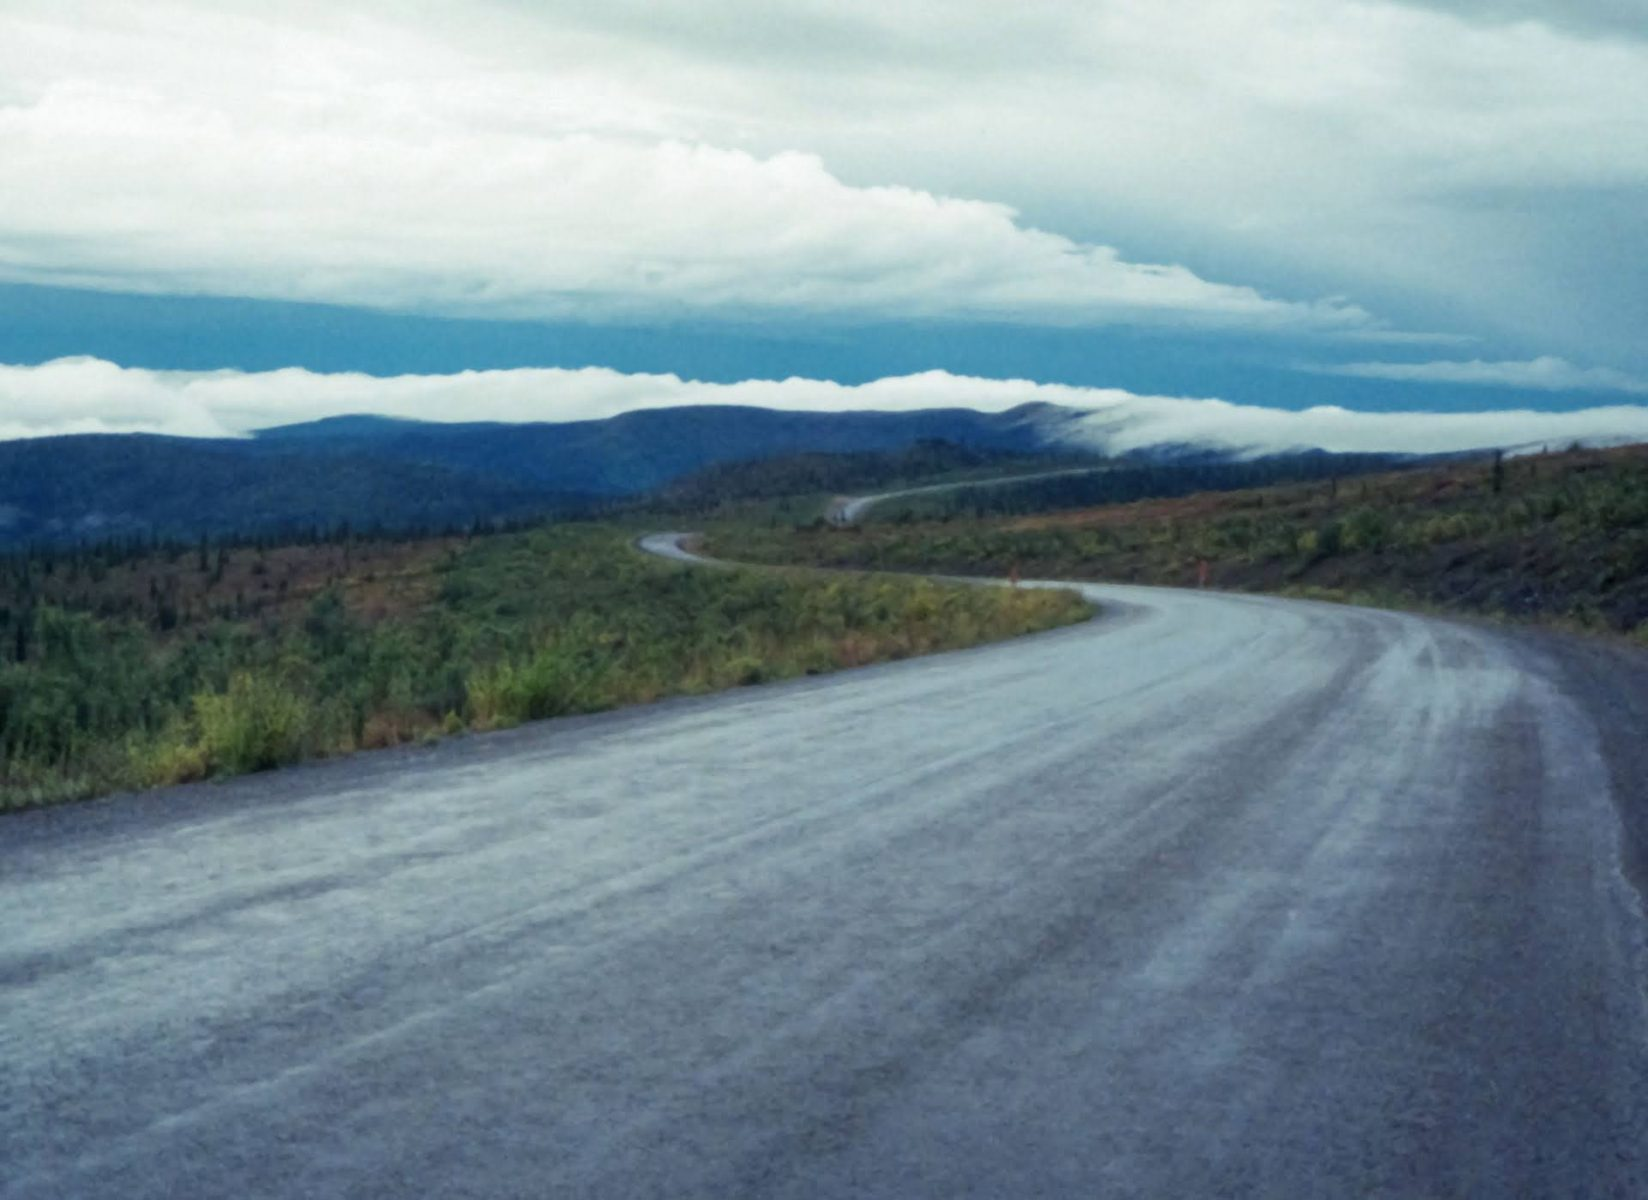 A gravel road winds along an open ridge surrounded by shrubs and distant mountains. It's a rainy day